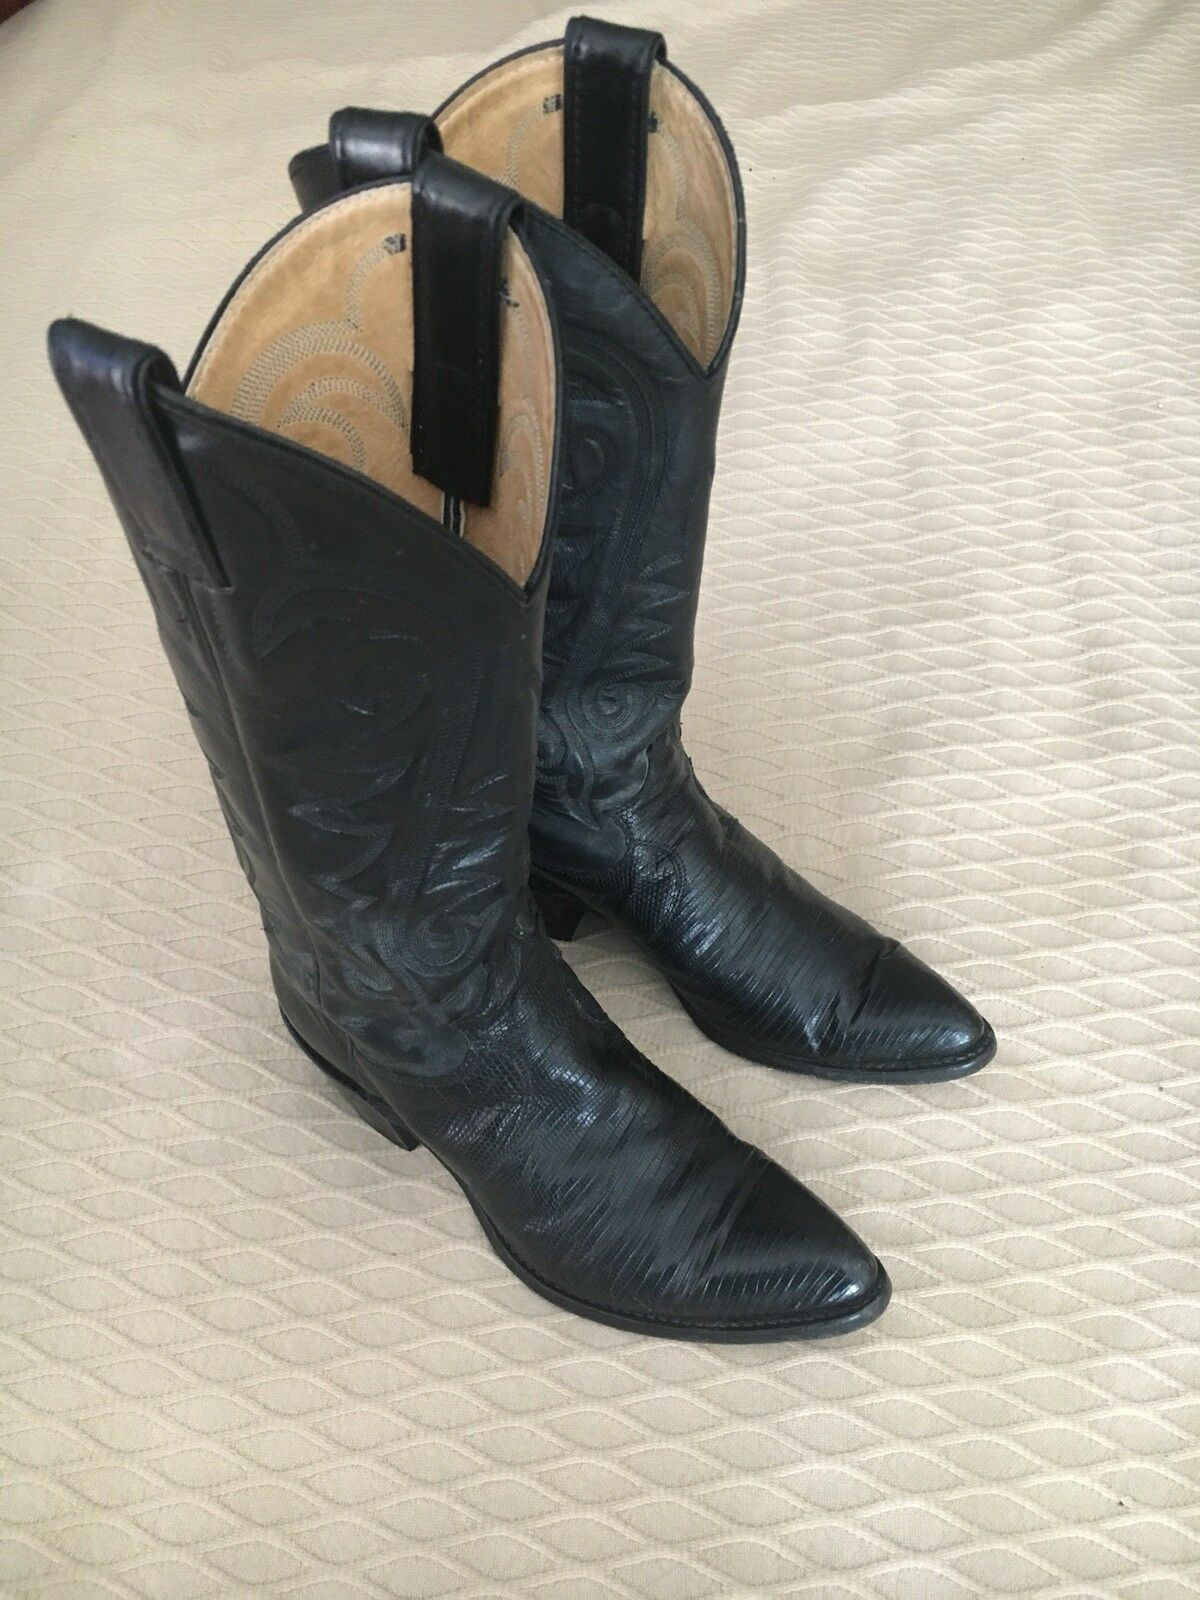 JUST DISCOUNTED Vintage Justin Womens 6.5 B Black Leather Lizard Cowboy Boots